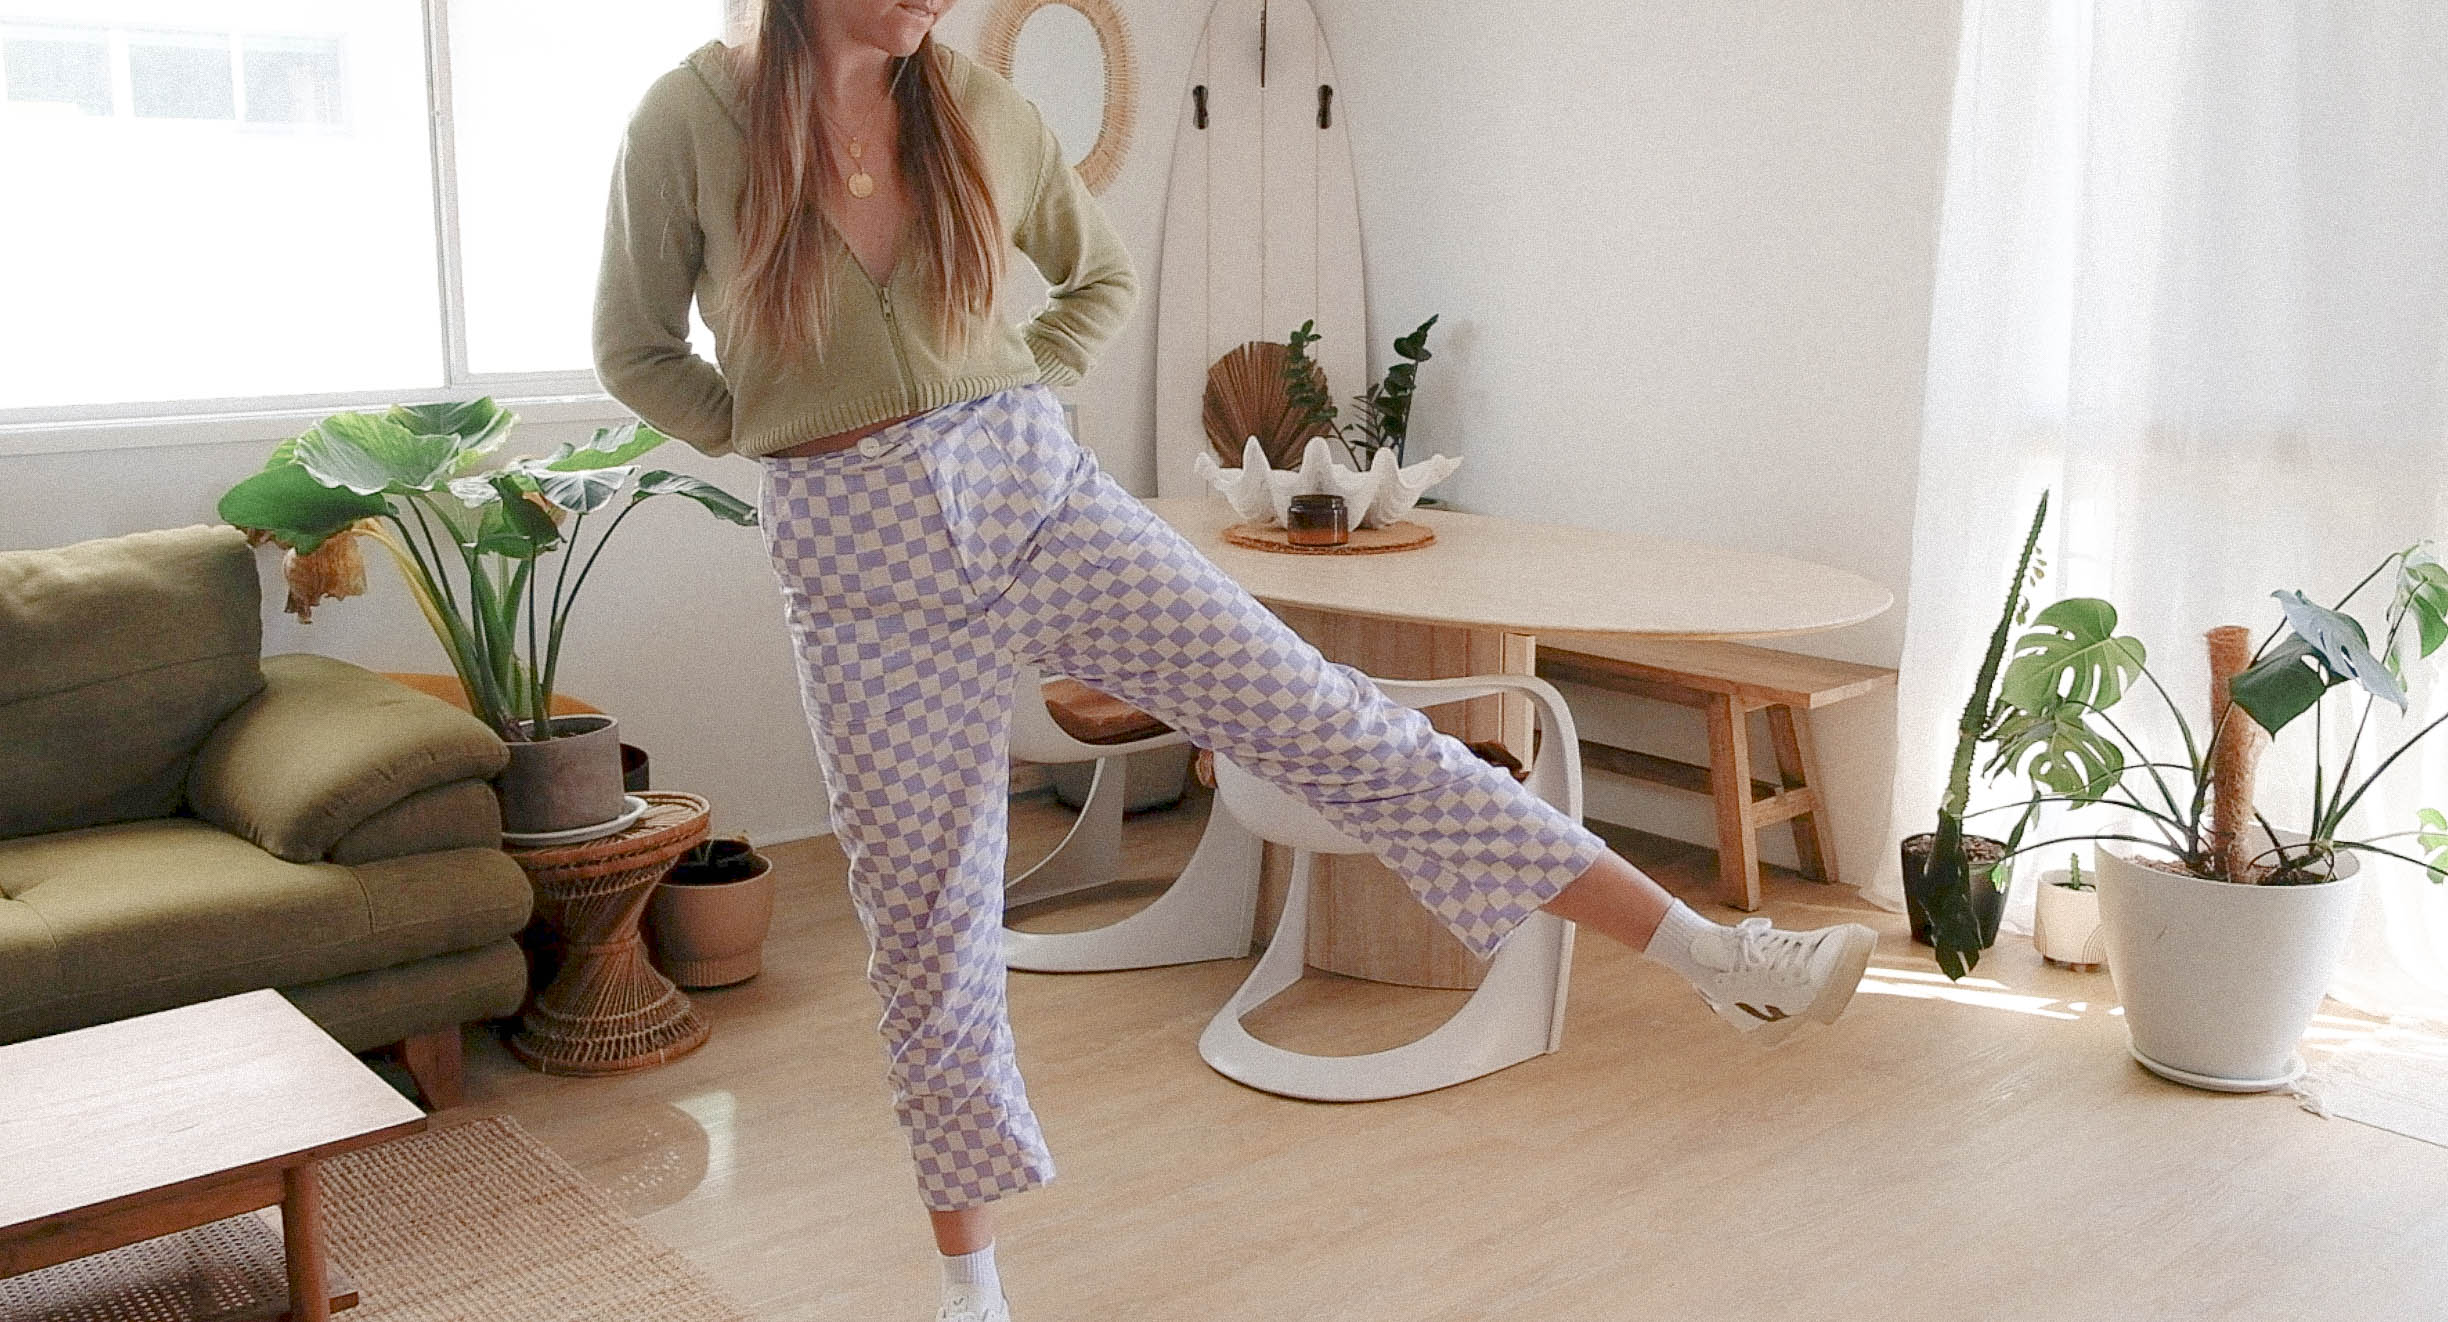 Maddy kicks her leg to the right while wearing white and purple checkered pants